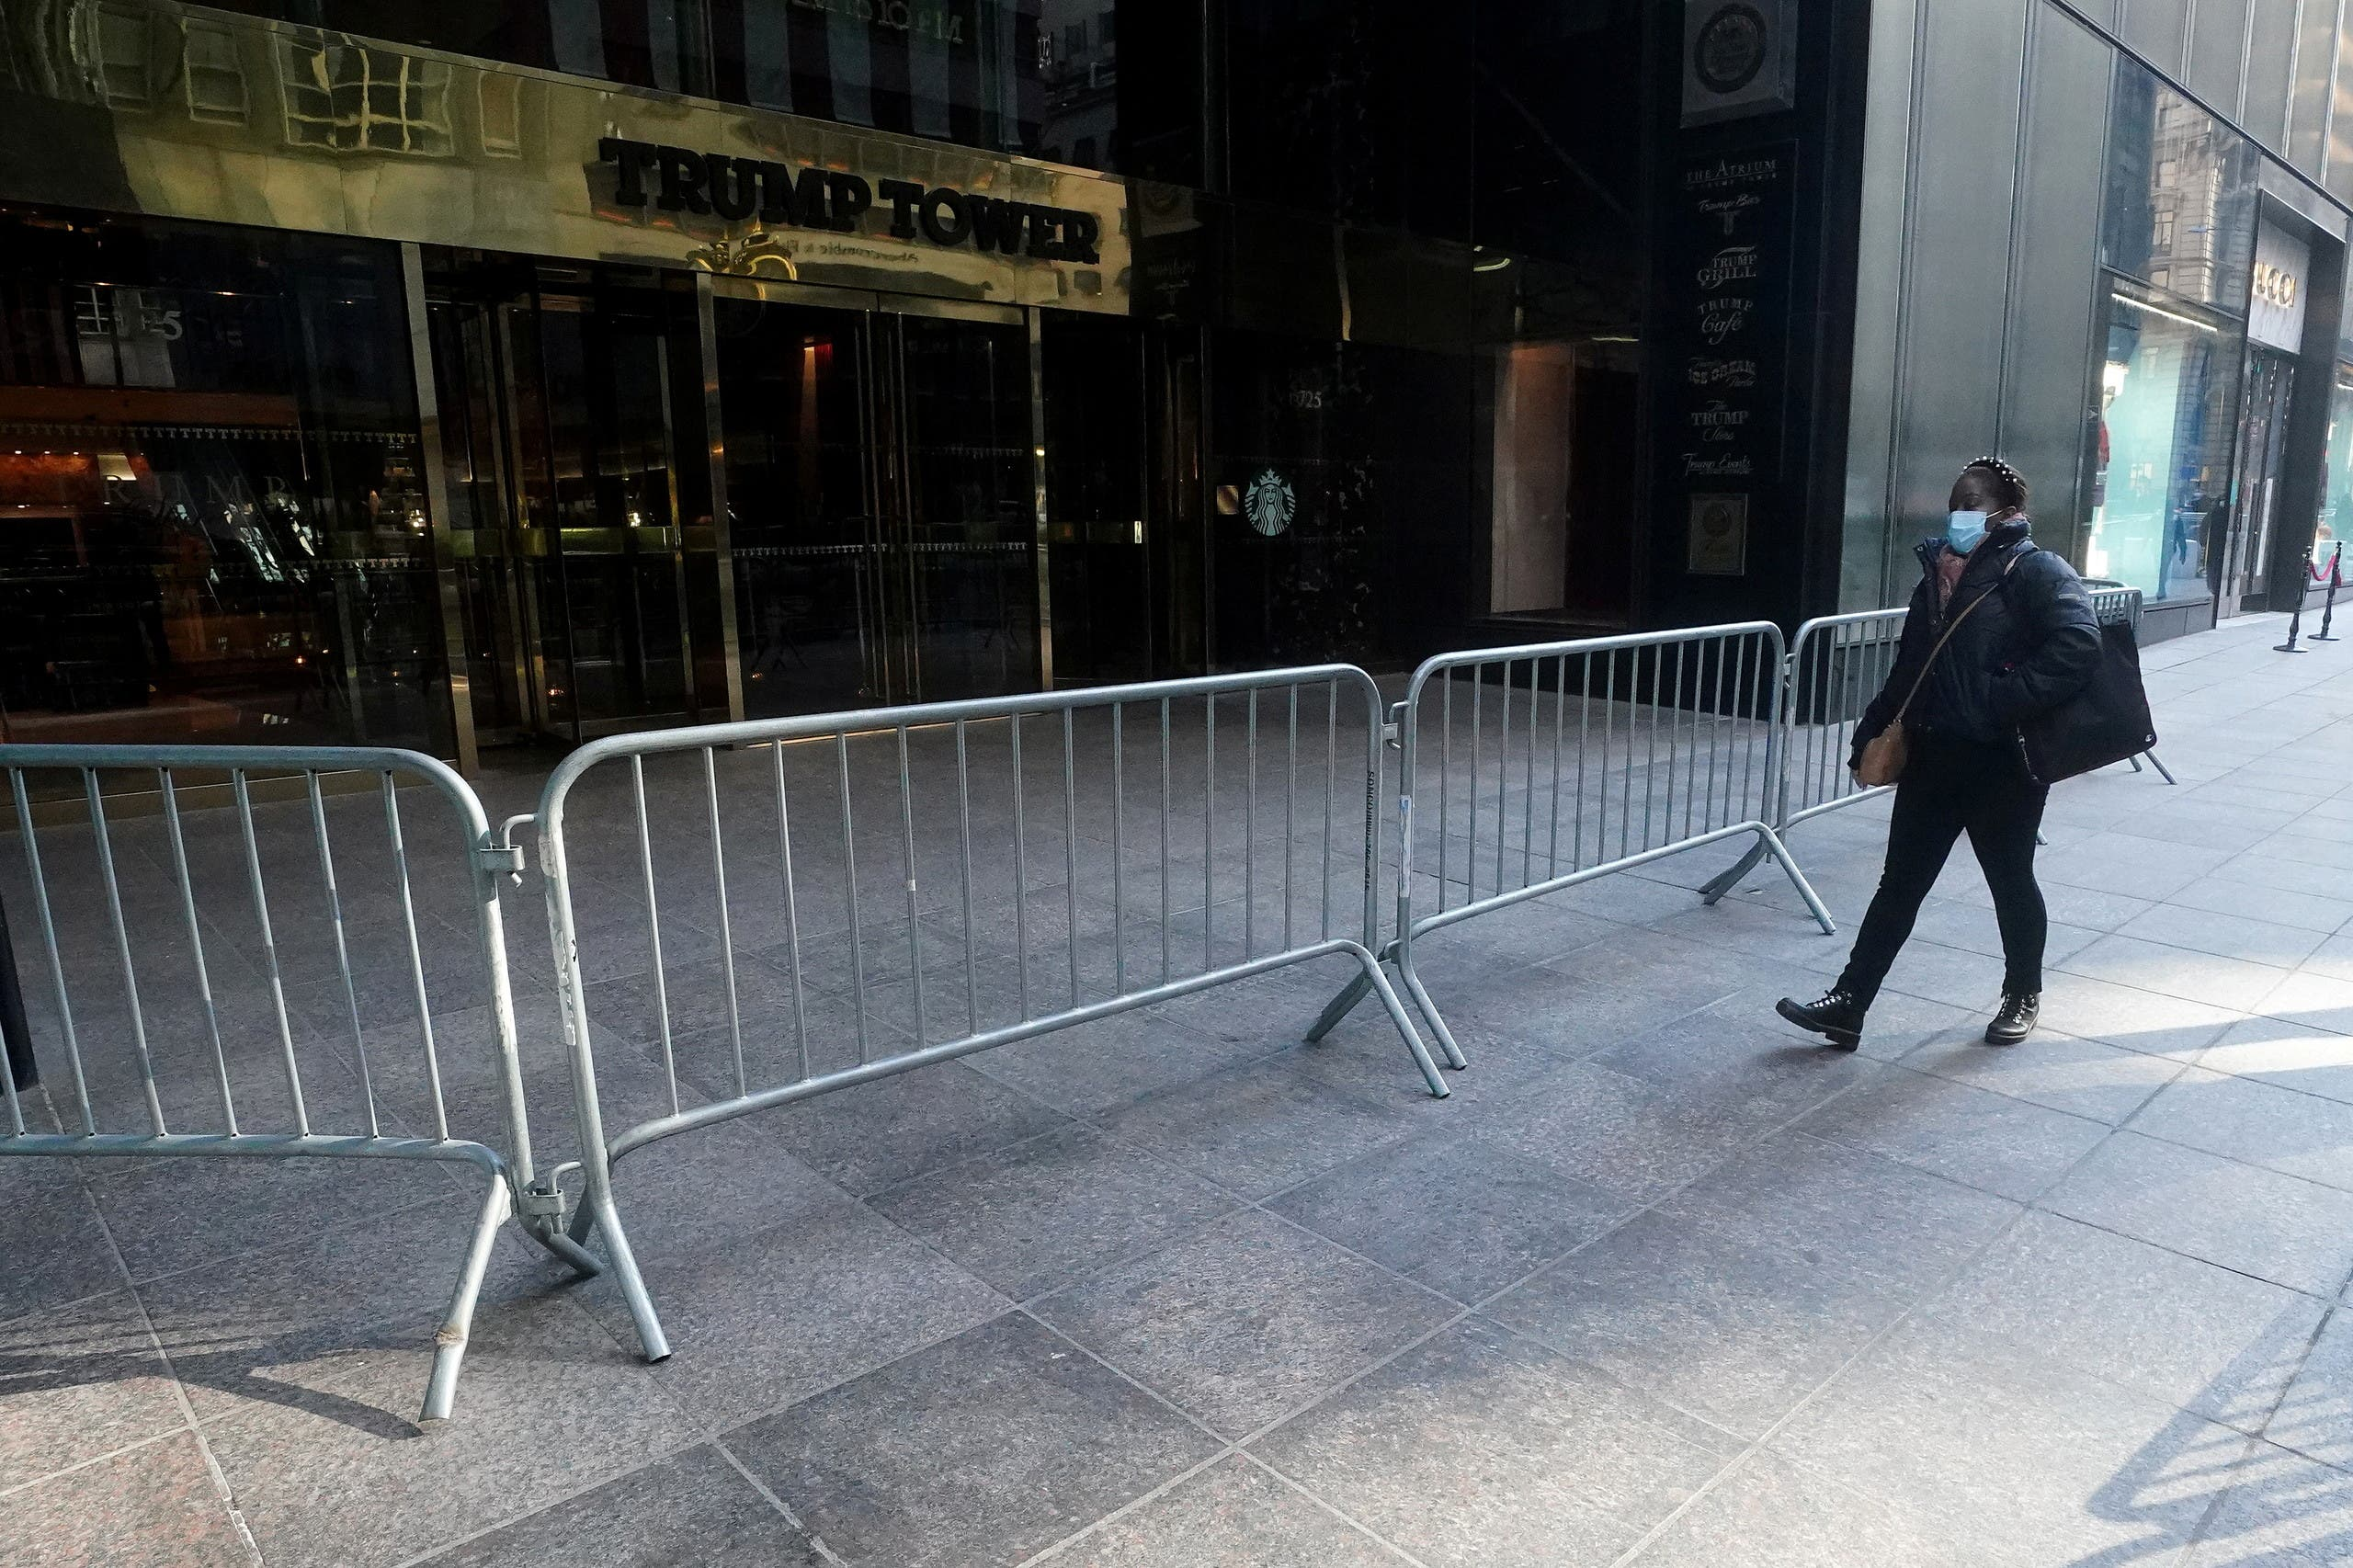 A person walks on the sidewalk outside Trump Tower amid the coronavirus disease (COVID-19) pandemic in the Manhattan borough of New York City, New York, U.S., January 12, 2021. (Reuters)